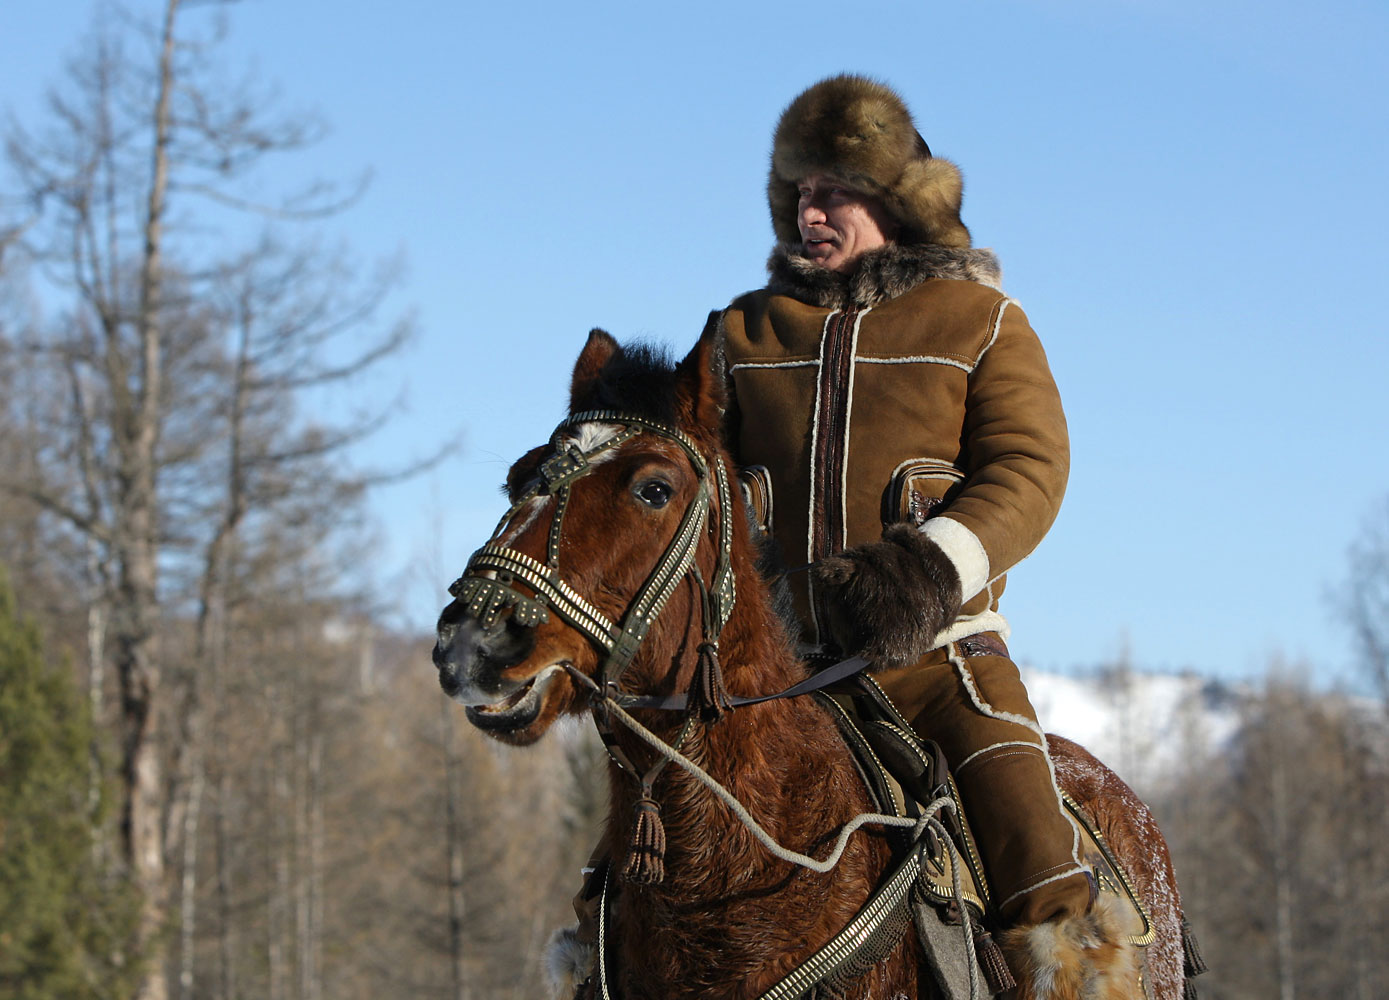 Then Prime Minister Putin rides a horse in the foothills of Karatash, near the capital of the Khakassia region in Siberia, Feb. 25, 2010.